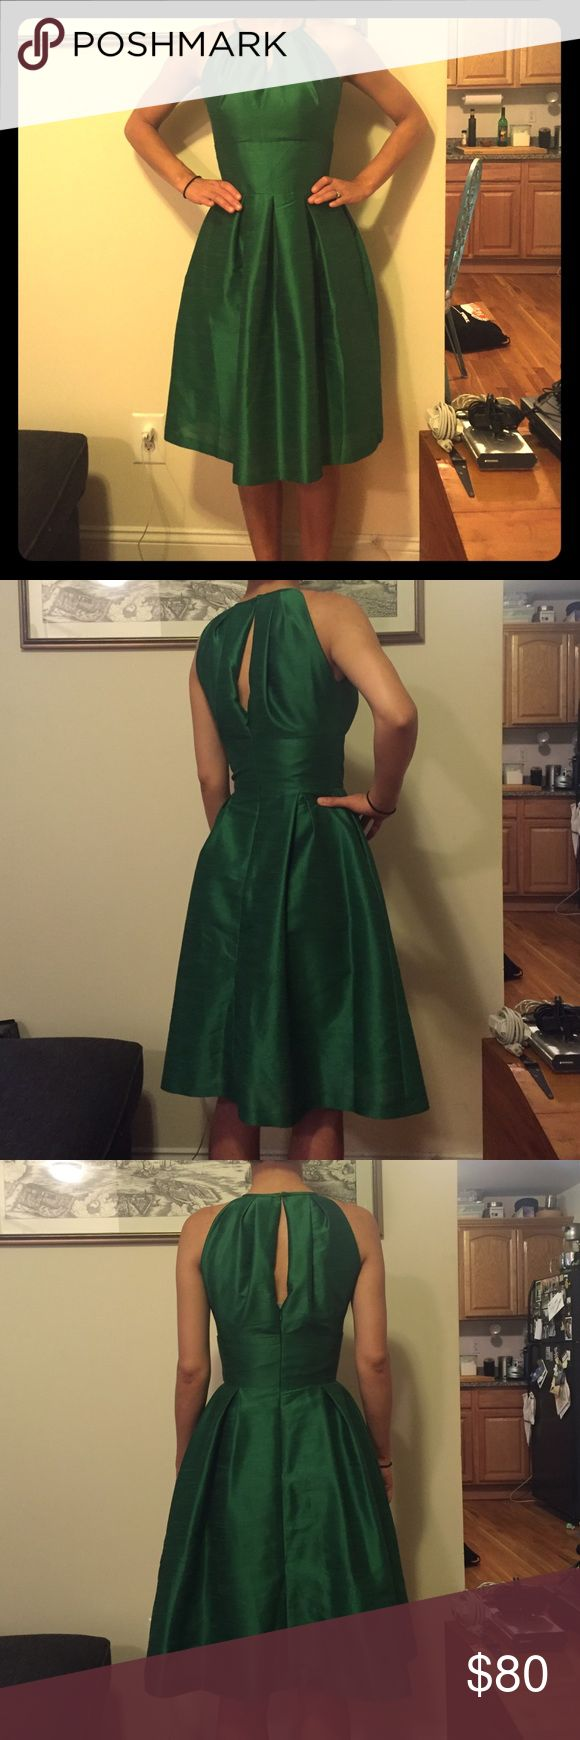 """Fit and Flare Bridesmaid Dress Bridesmaid dress, like new!! Worn once. Material is """"silk dupioni."""" Bust: 35, Waist: 27, Hip: 38 Alfred Sung Dresses"""